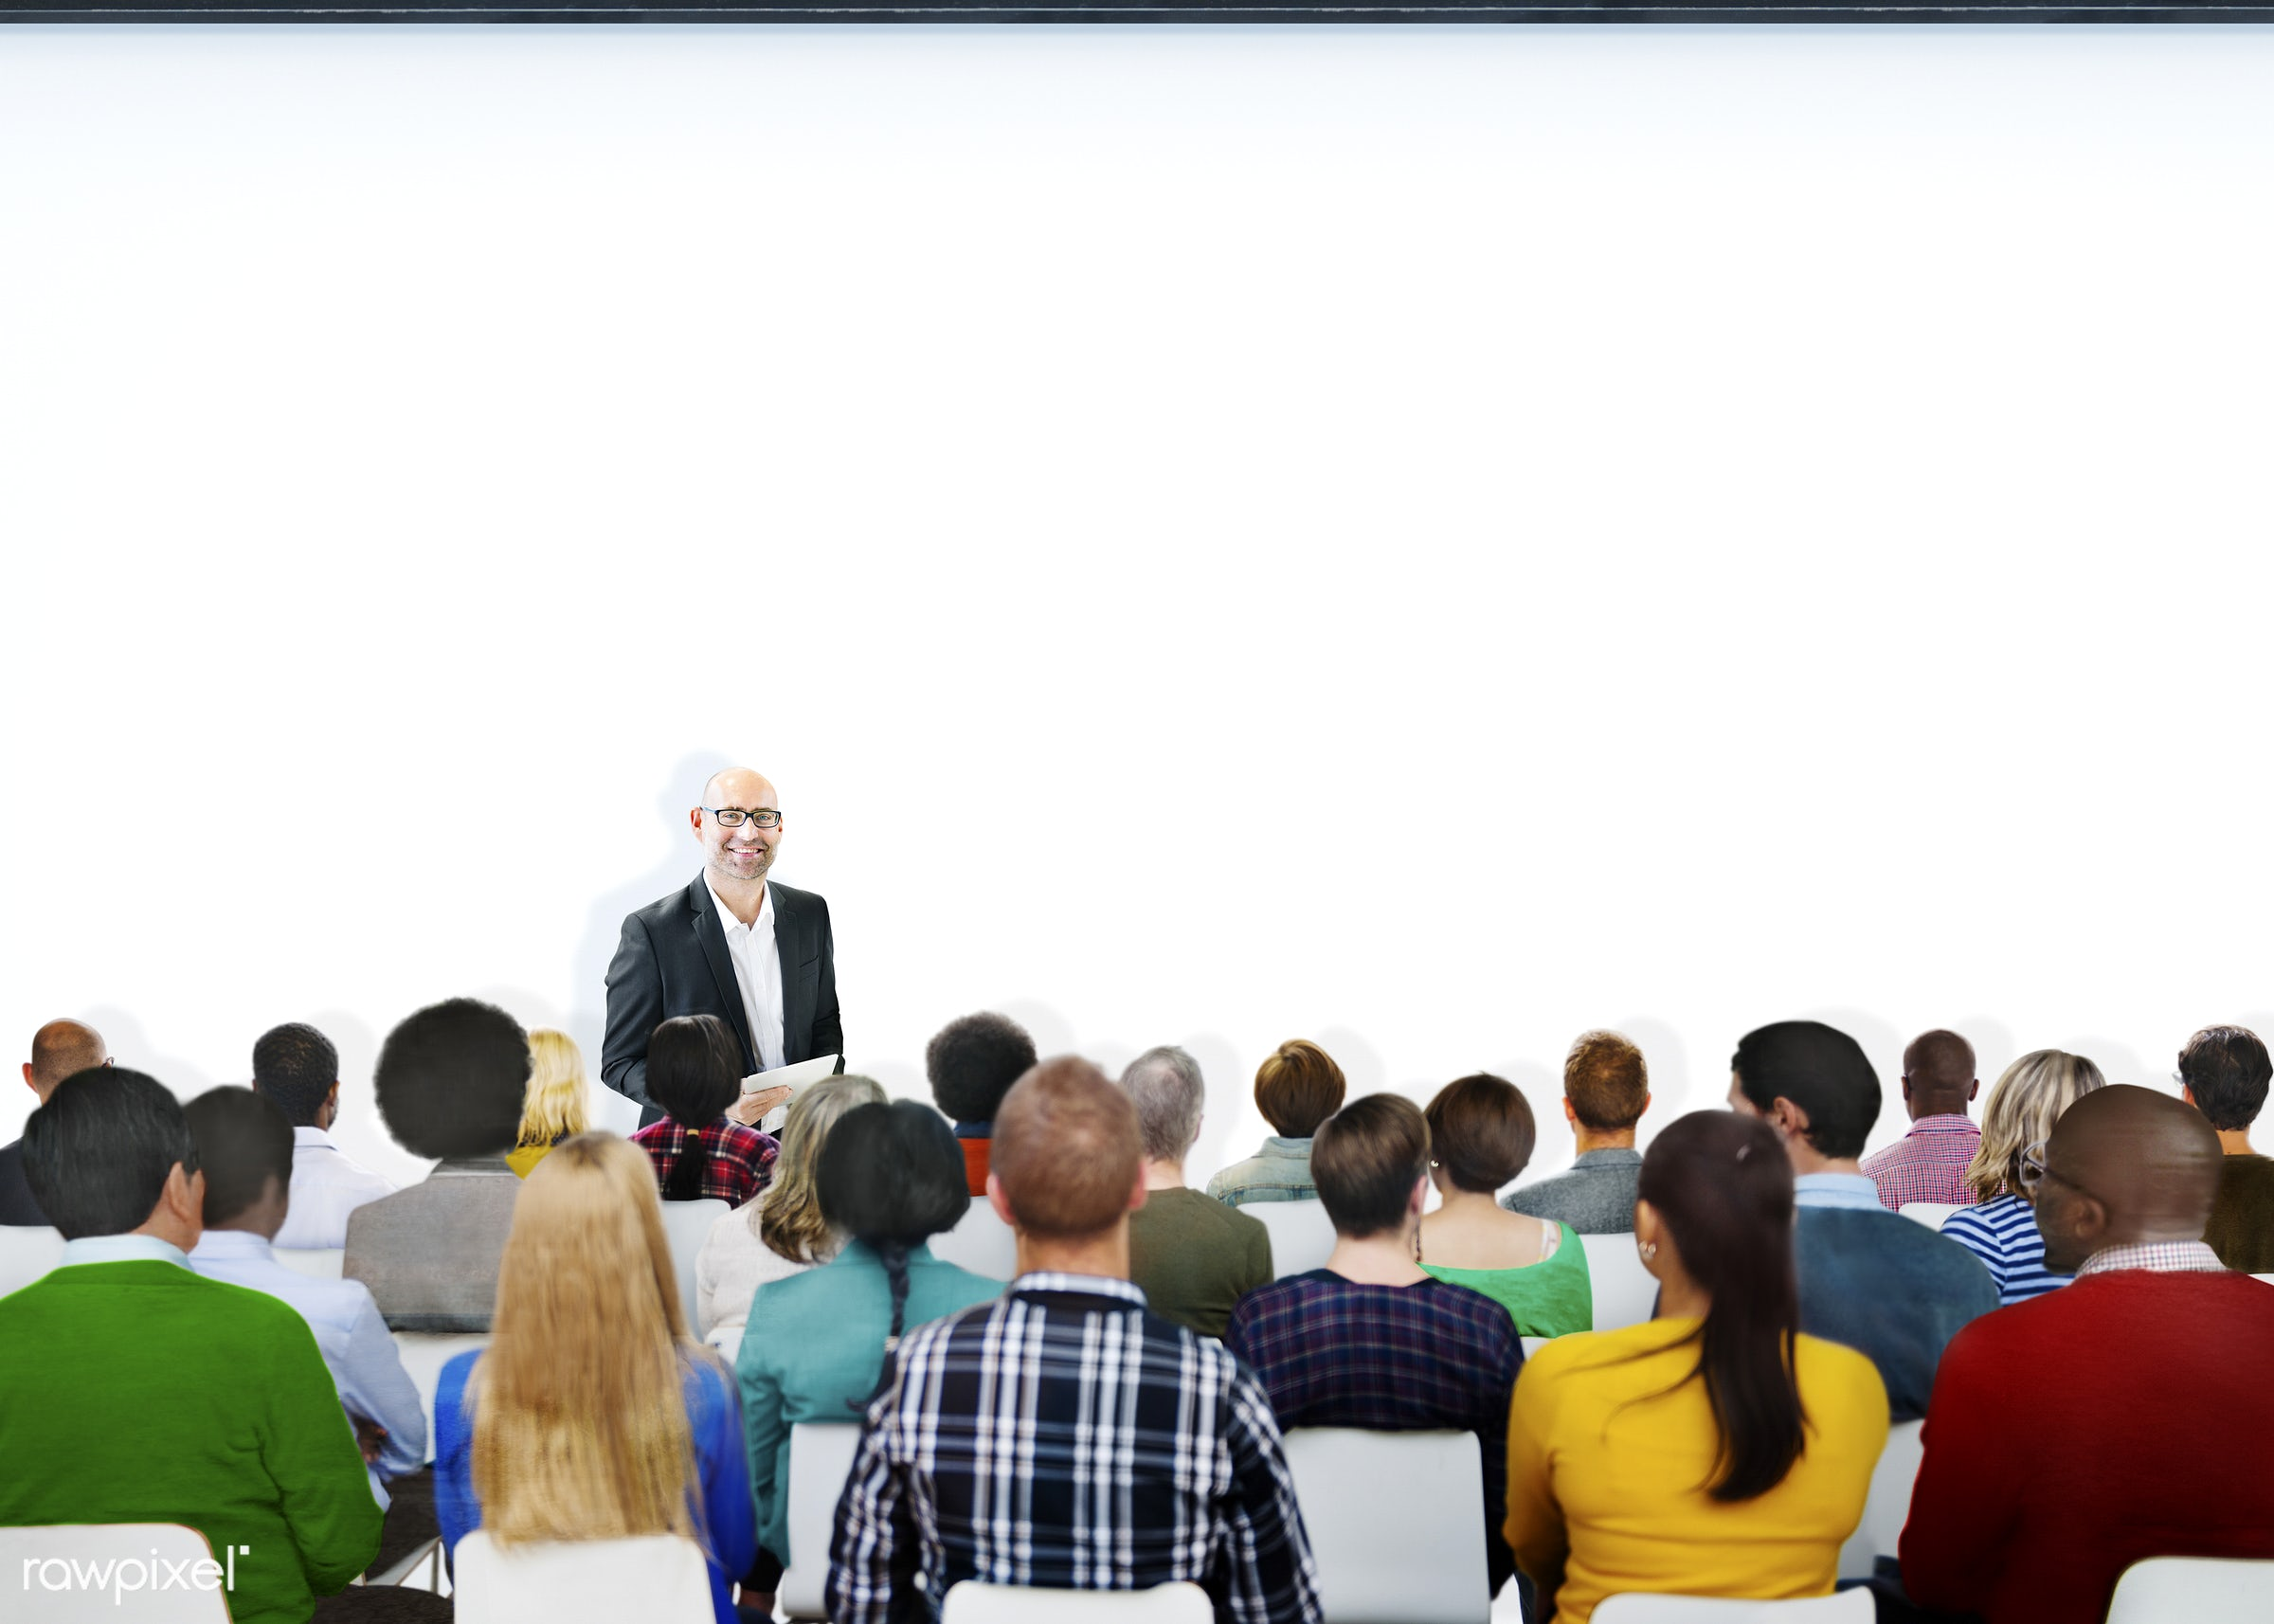 audience, casual, colorful, community, conference, copy space, crowd, diverse, diversity, ethnic, ethnicity, group, group of...